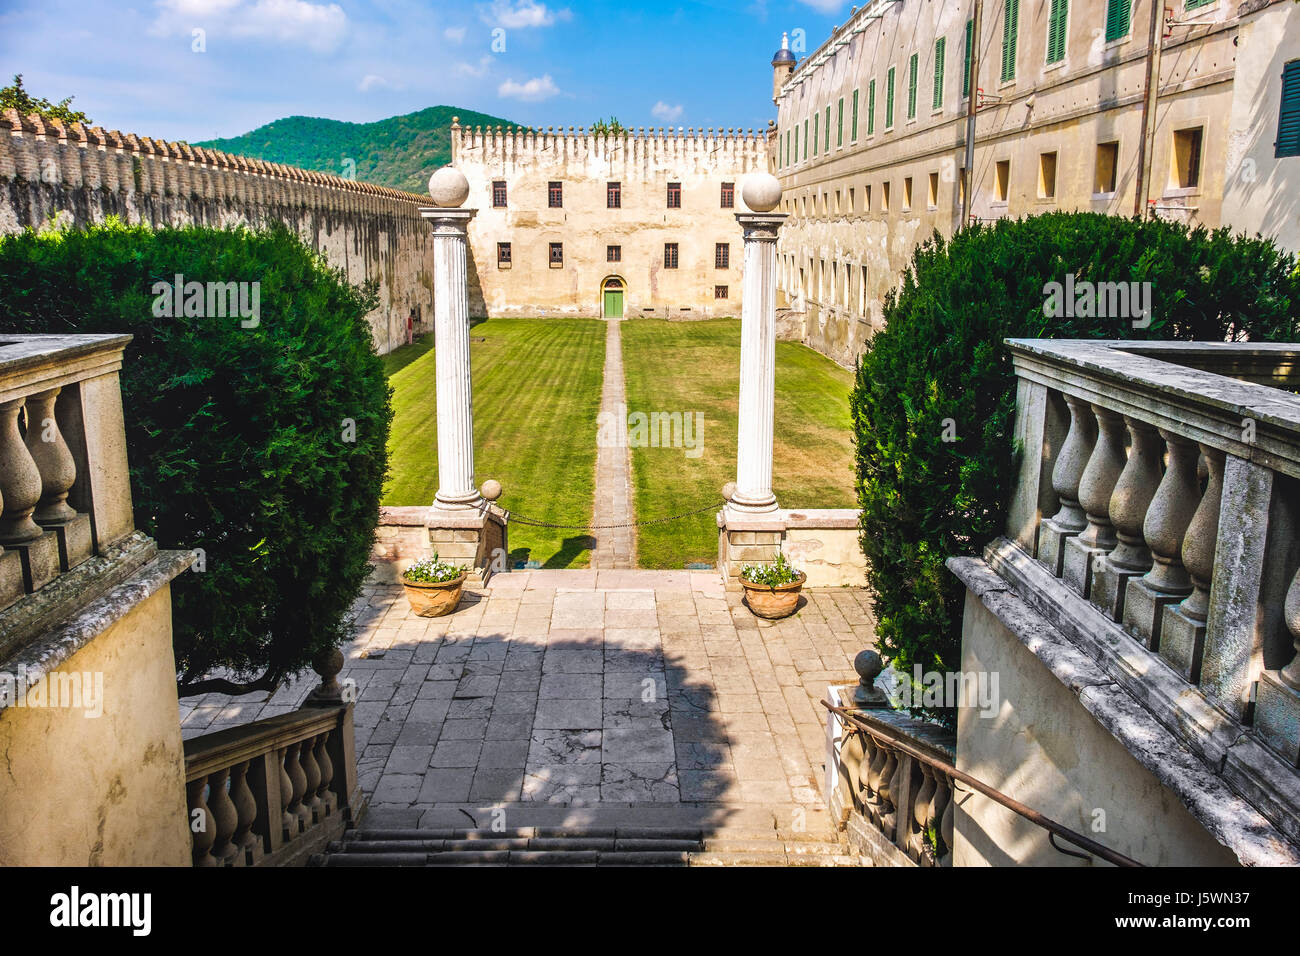 castle courtyard in the euganean hills area padova province italy - Stock Image